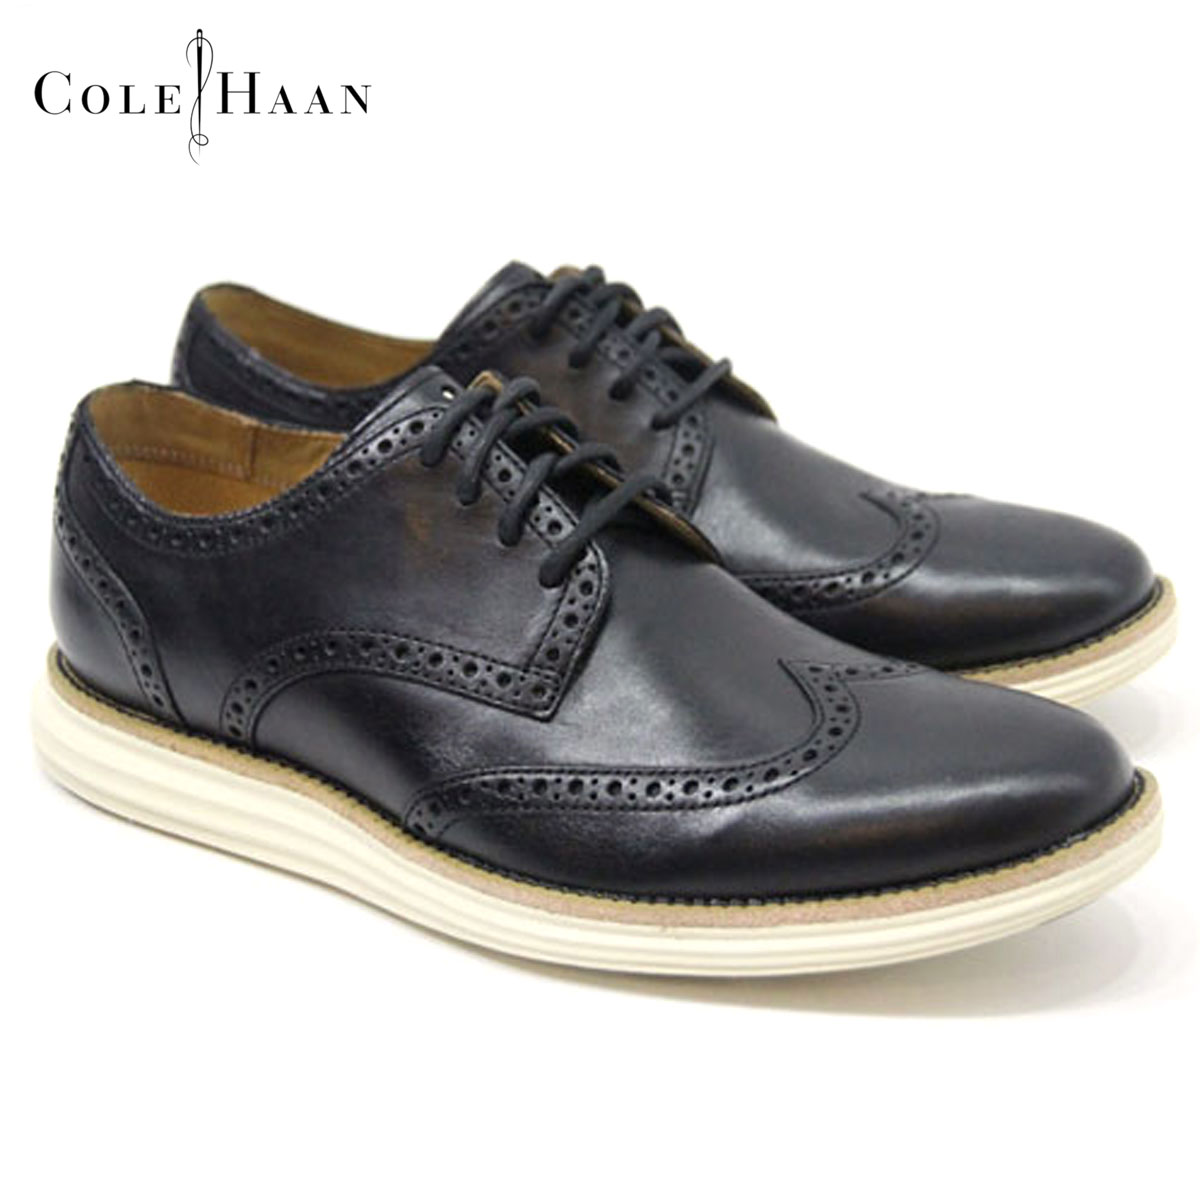 Rakuten Ichiba shop MIXON | Rakuten Global Market: Cole Haan COLE HAAN  genuine dress shoes LUNARGRAND WING. TIP C14110 (BLACK/IVORY)